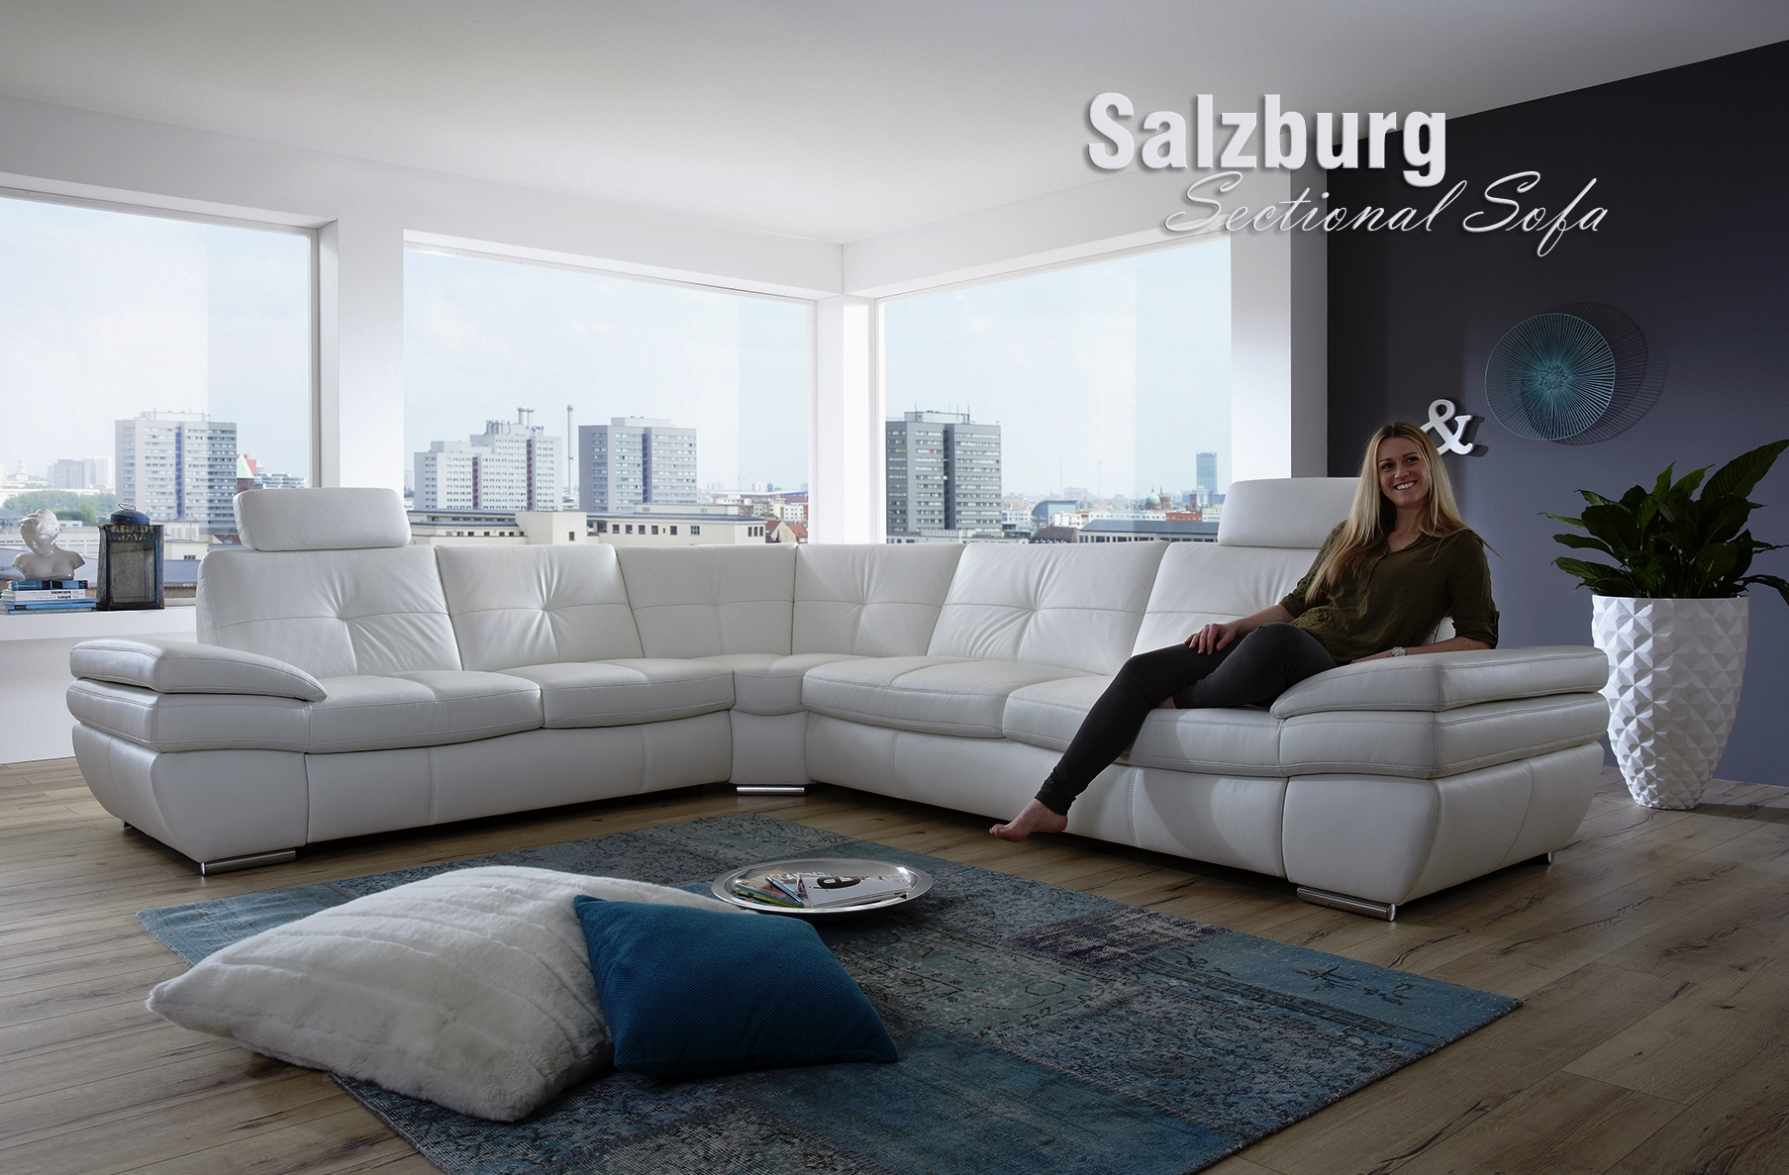 how to re plump leather sofa cushions kincaid drop leaf table salzburg sectional - design and functionality